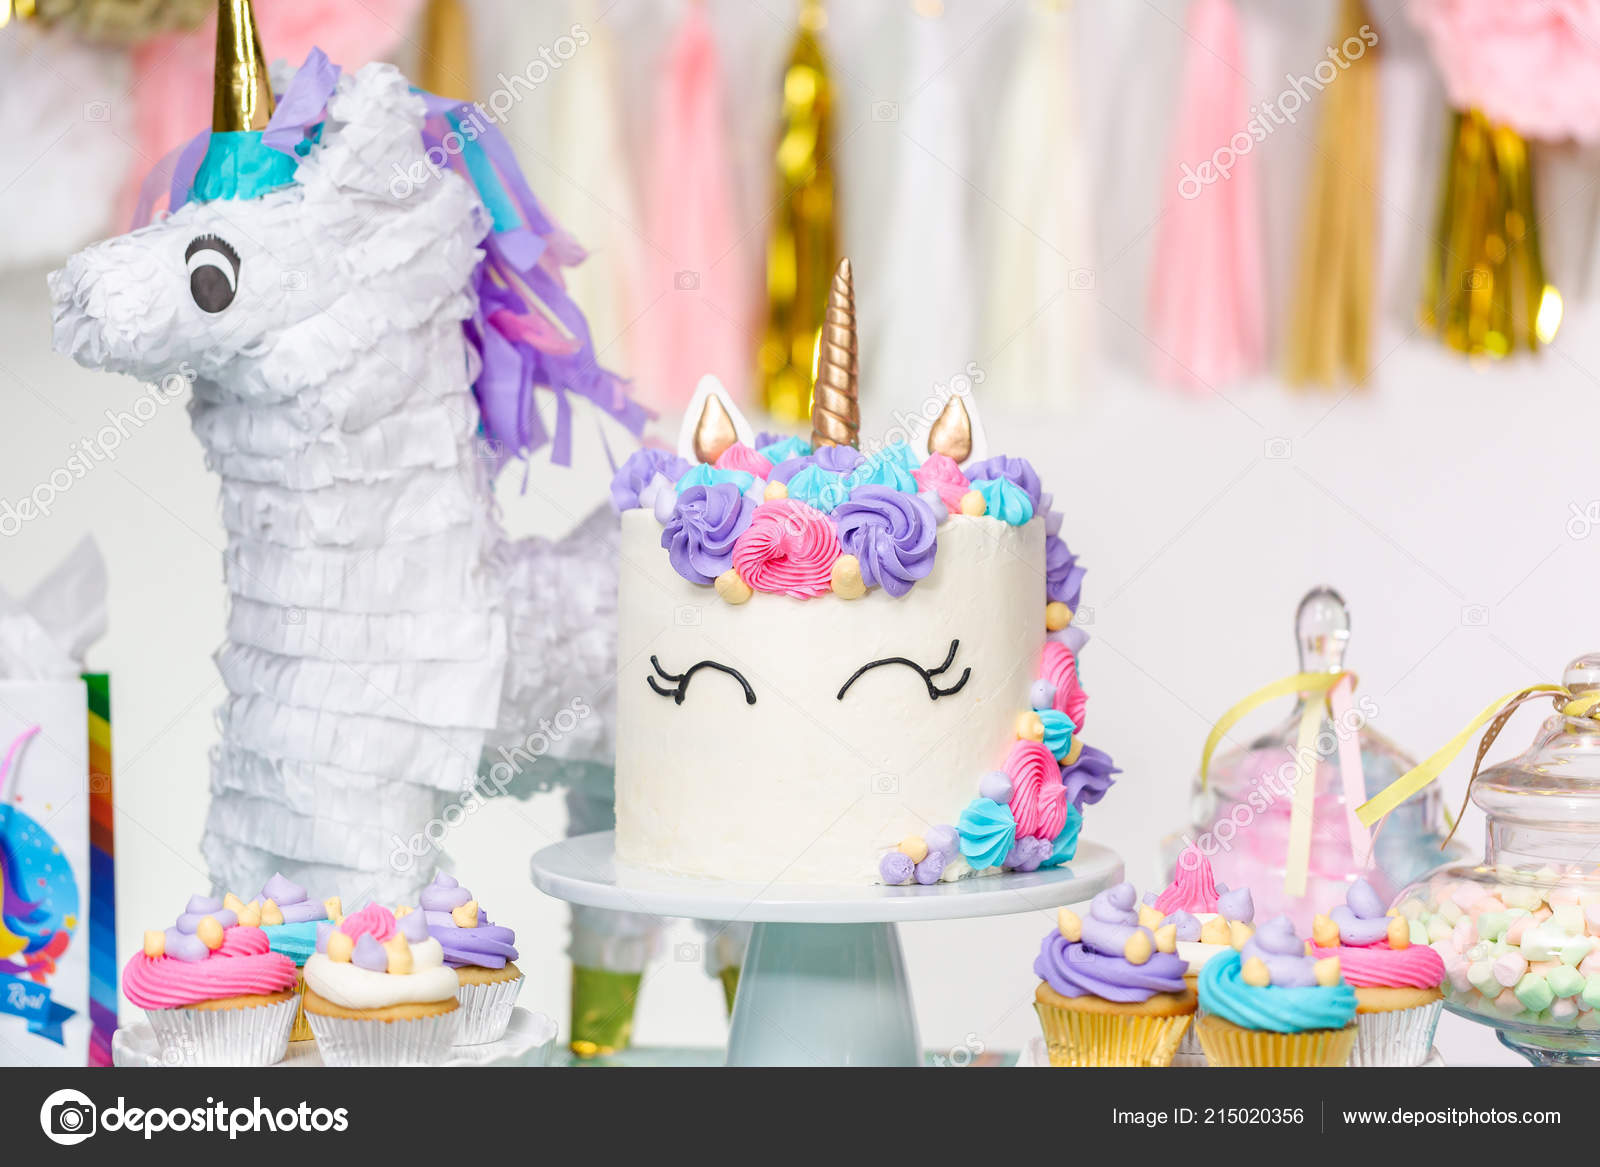 Little Kid Birthday Party Little Girl Birthday Party Table Unicorn Cake Cupcakes Sugaer